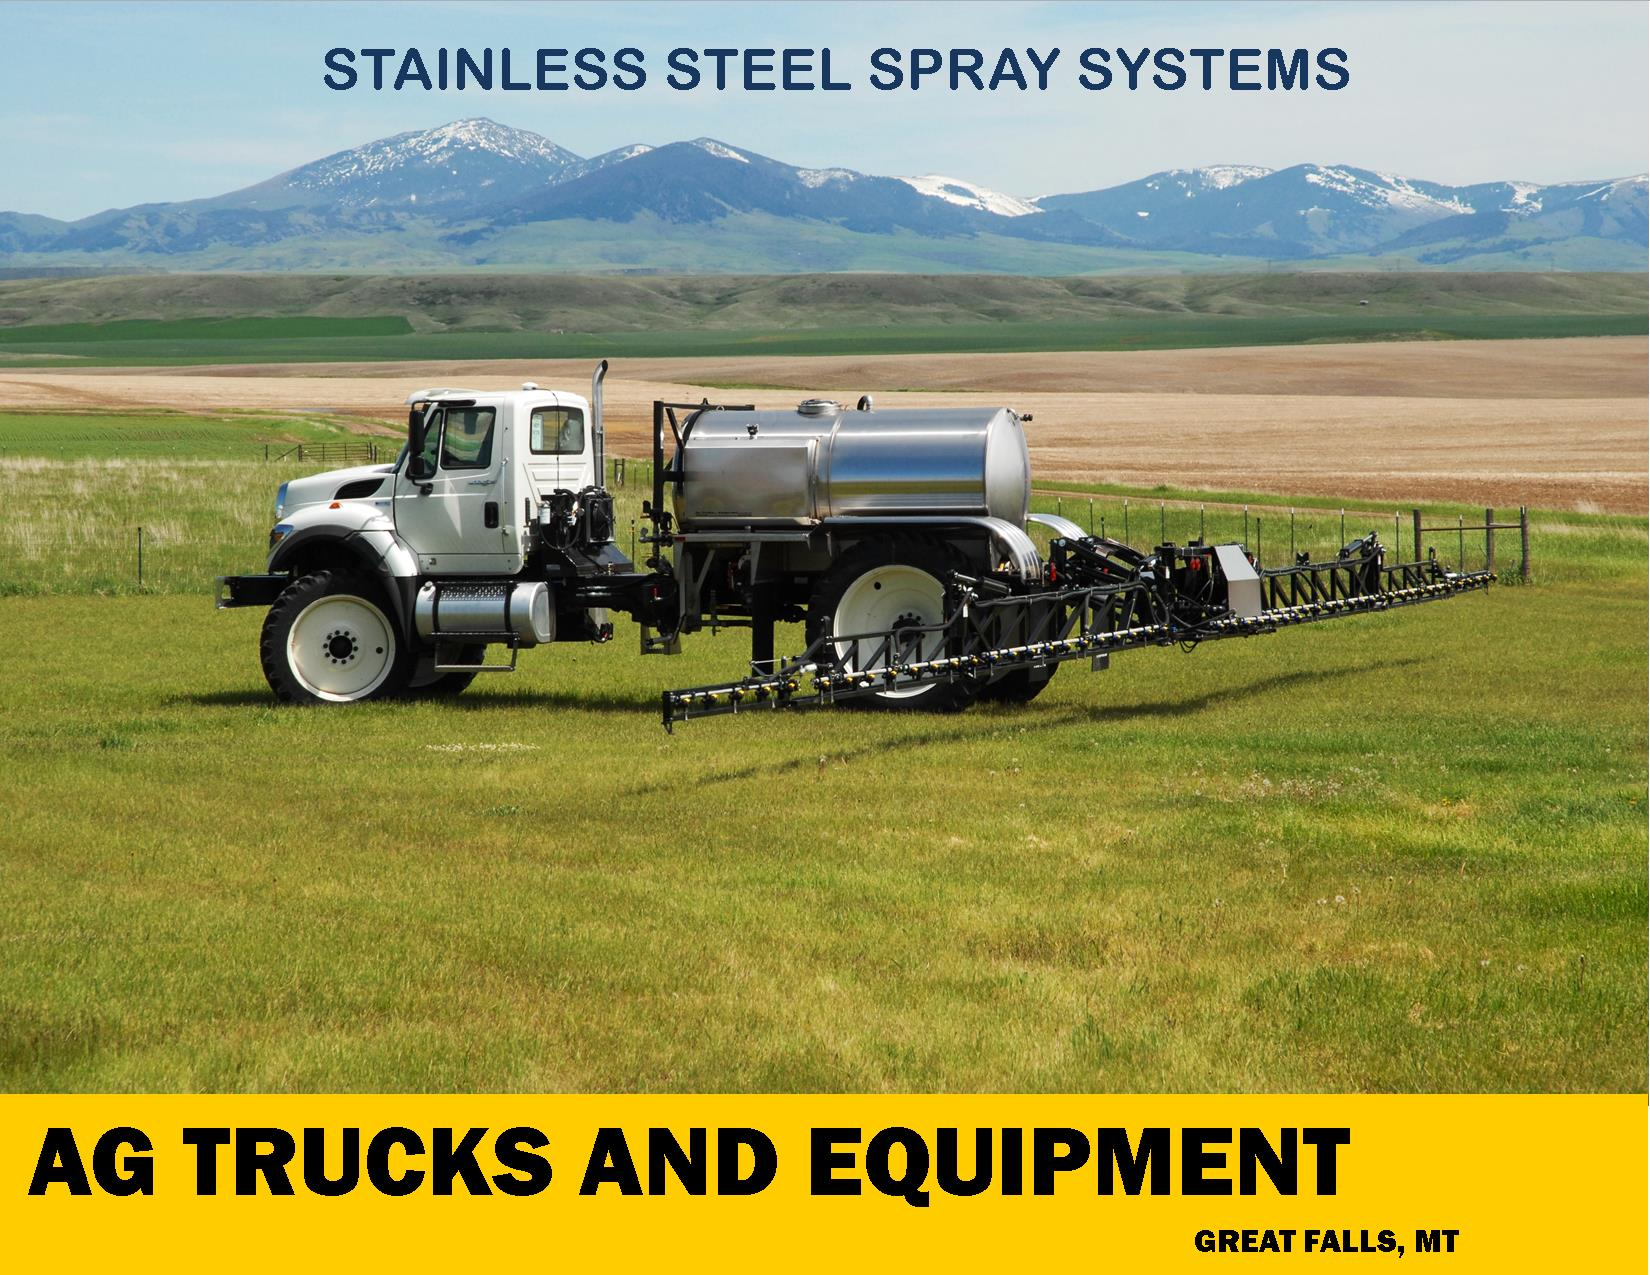 STAINLESS SPRAY SYSTEMS POSTER.jpg